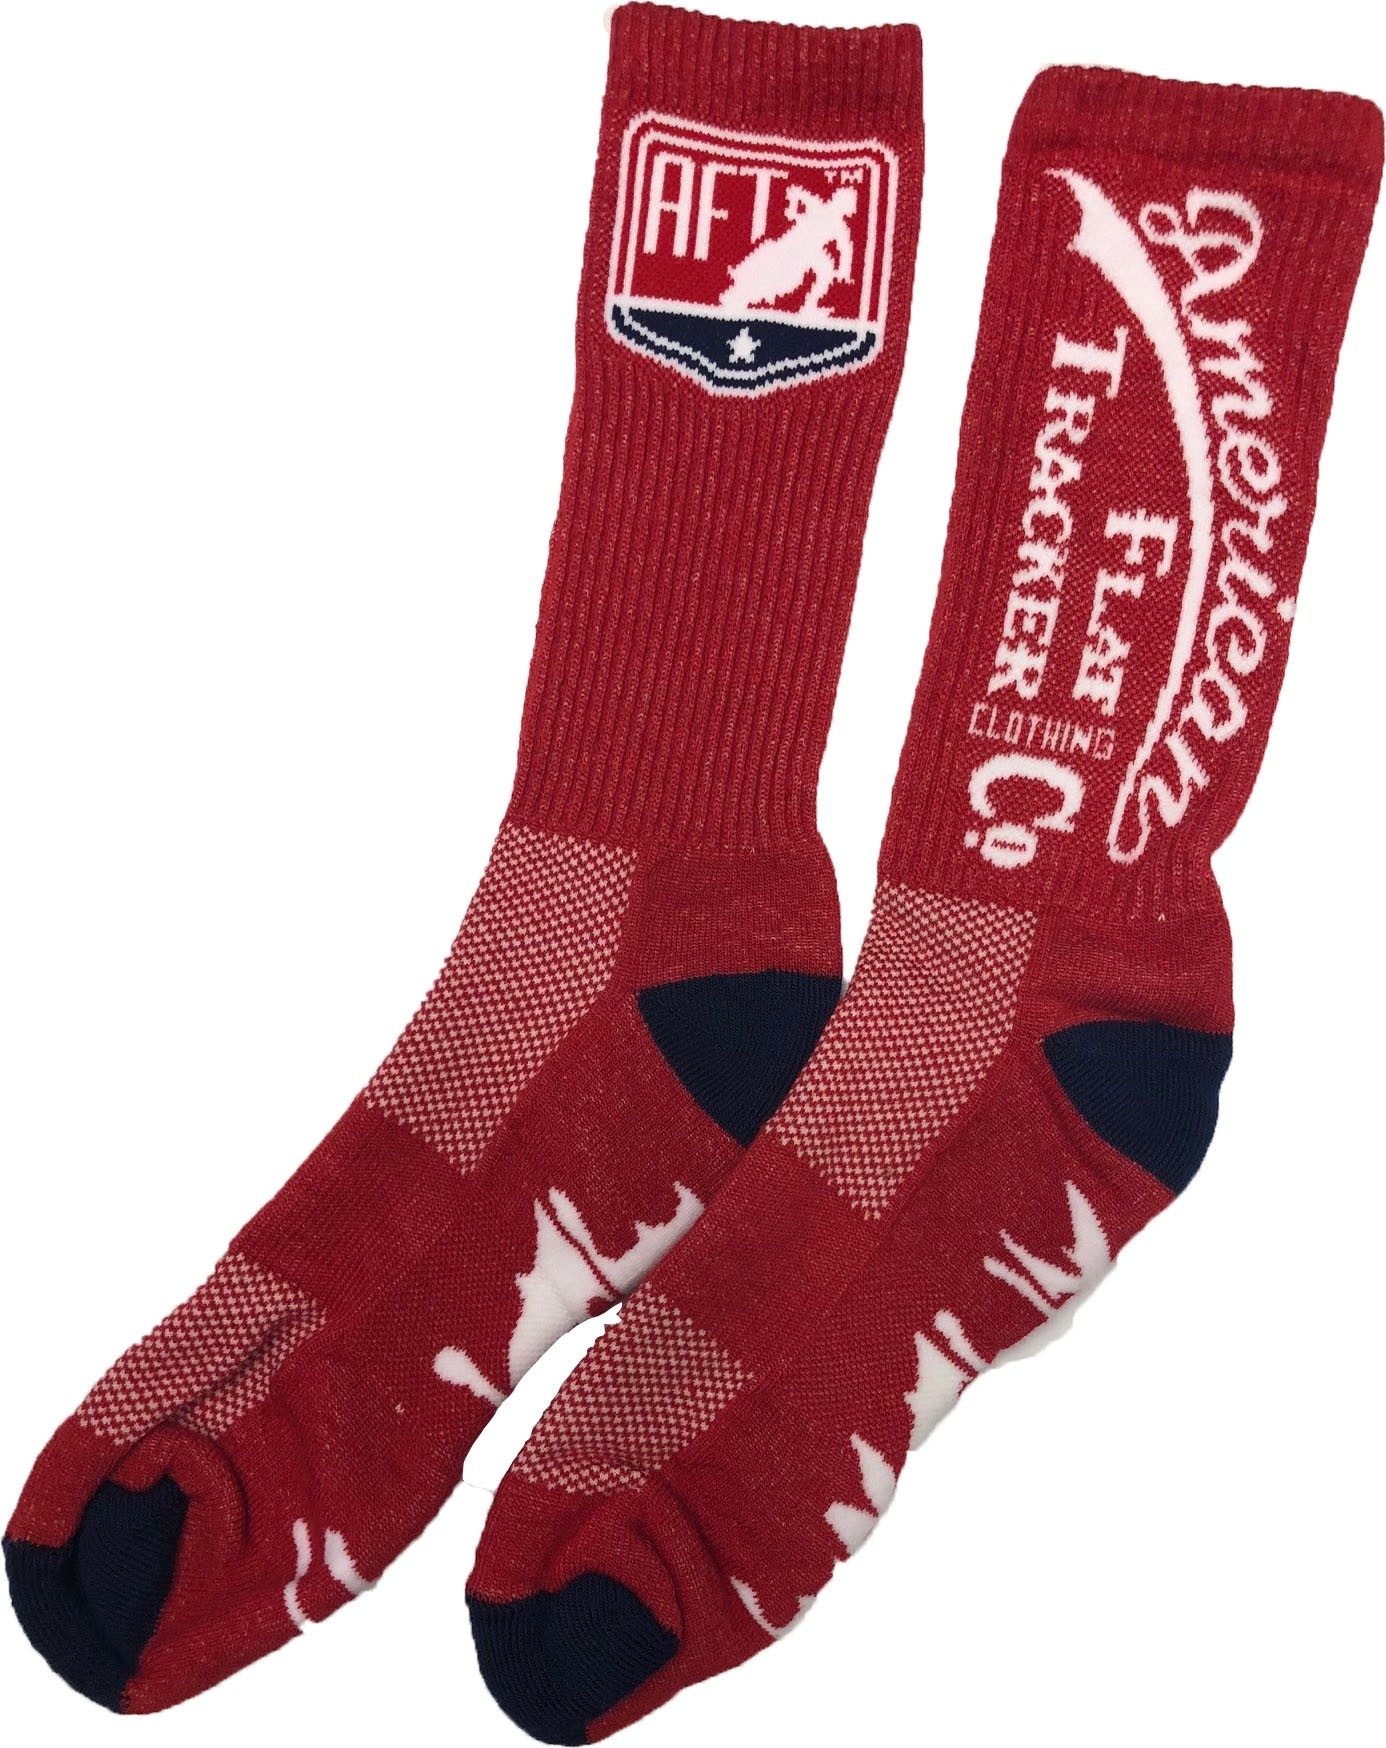 AFTCC:  Sock -  Crew Red